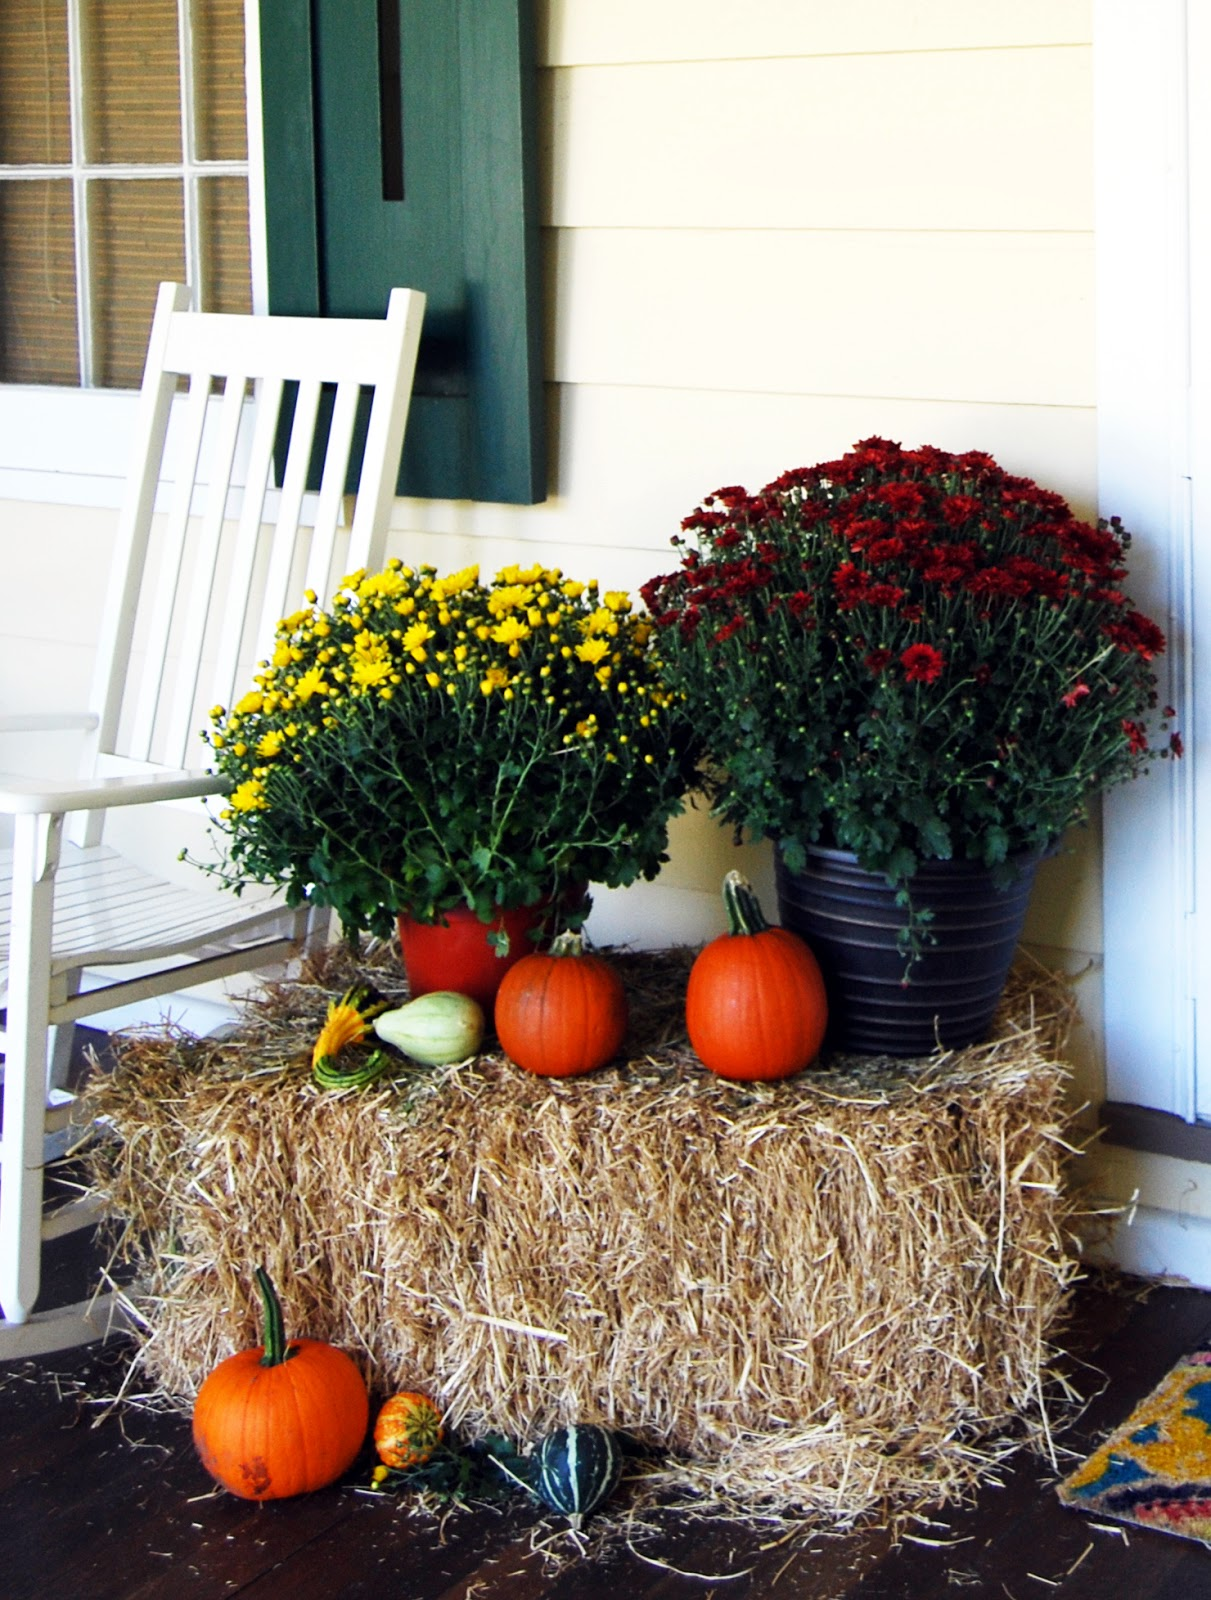 Outdoor fall decorating ideas front porch - Outdoor Fall Decorating Ideas Front Porch Decorating Ideas For Fall And Autumn Http